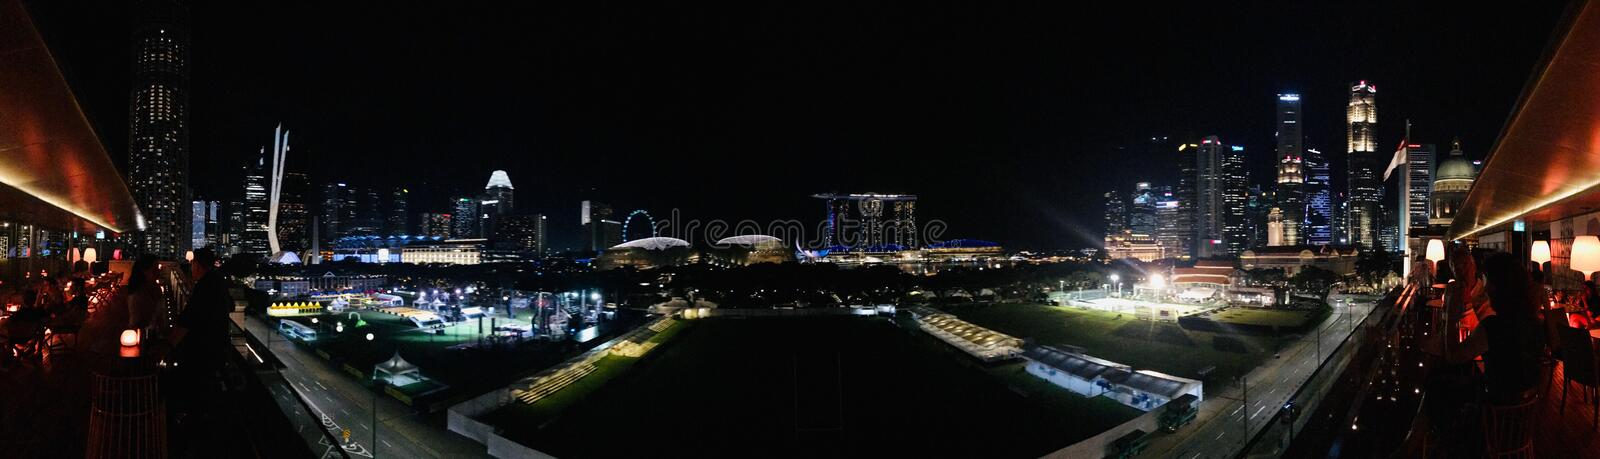 Night Scene Singapore Commercial centre 02 royalty free stock photo